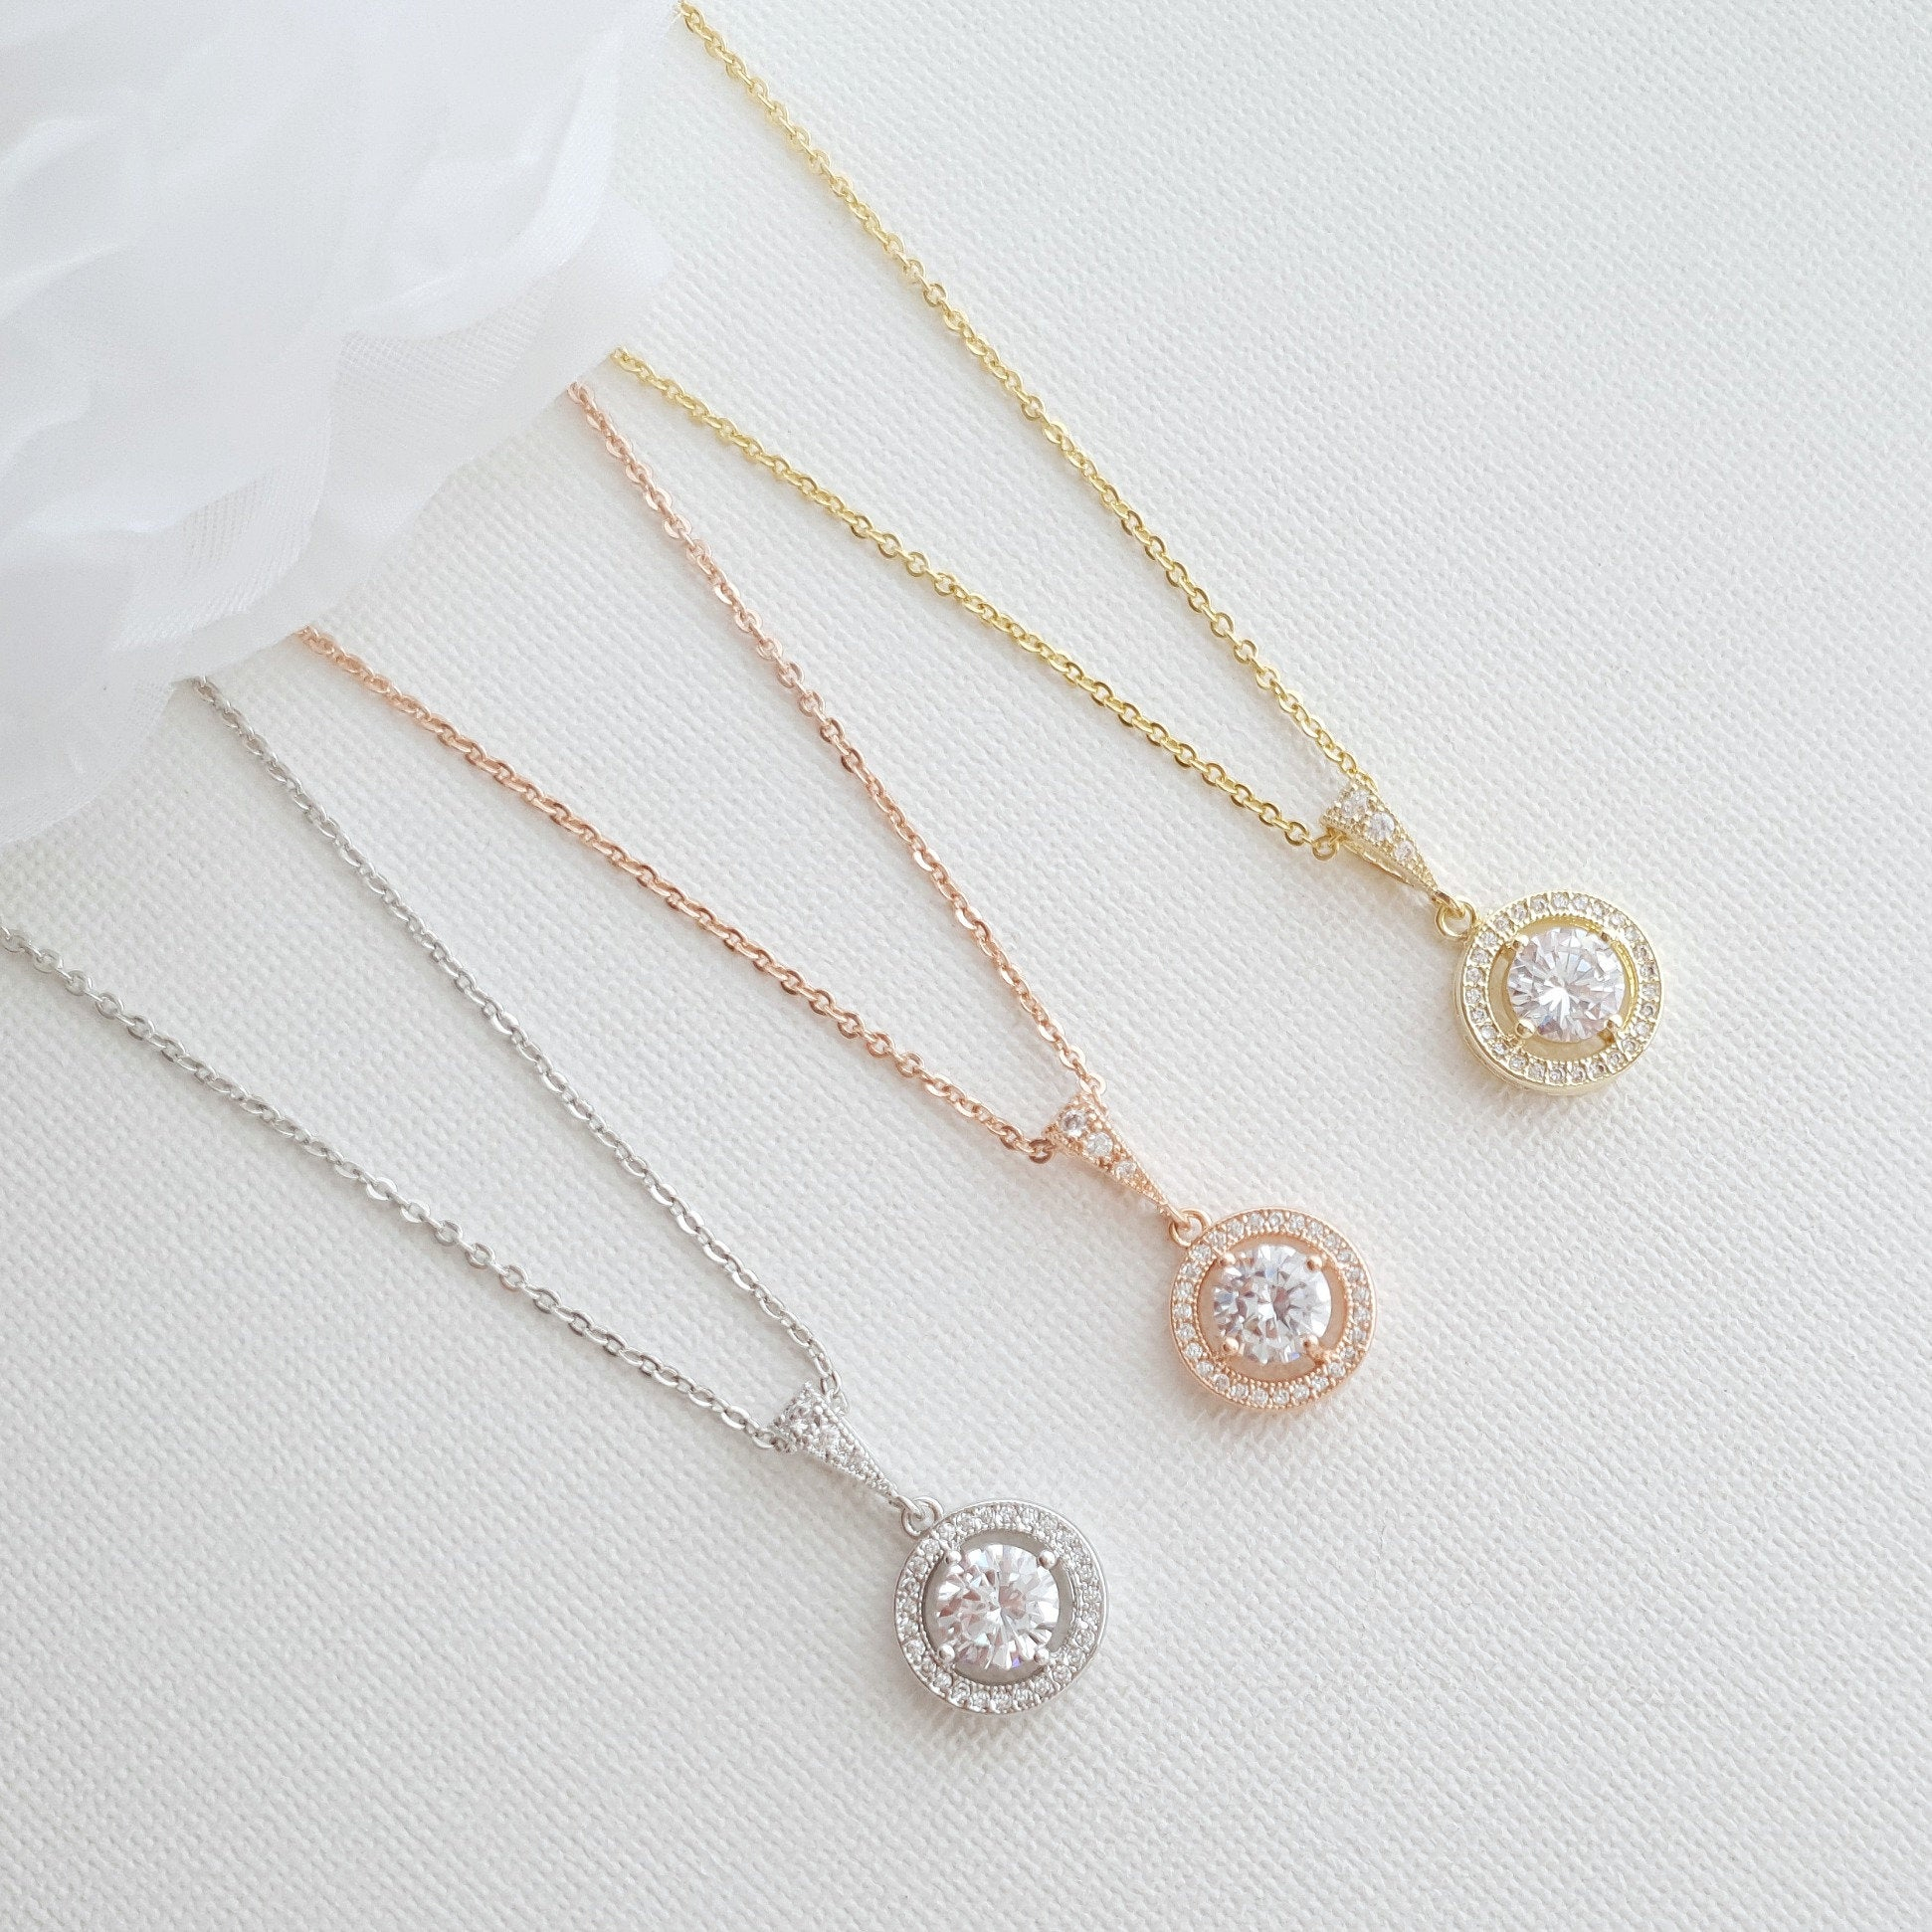 Crystal Bridal Pendant, Round Halo Wedding Pendant Necklace, Rose Gold Bridesmaid Necklace, Small Gold Pendant For Brides, Denise Pertaining To Most Recent Round Sparkle Halo Pendant Necklaces (View 25 of 25)